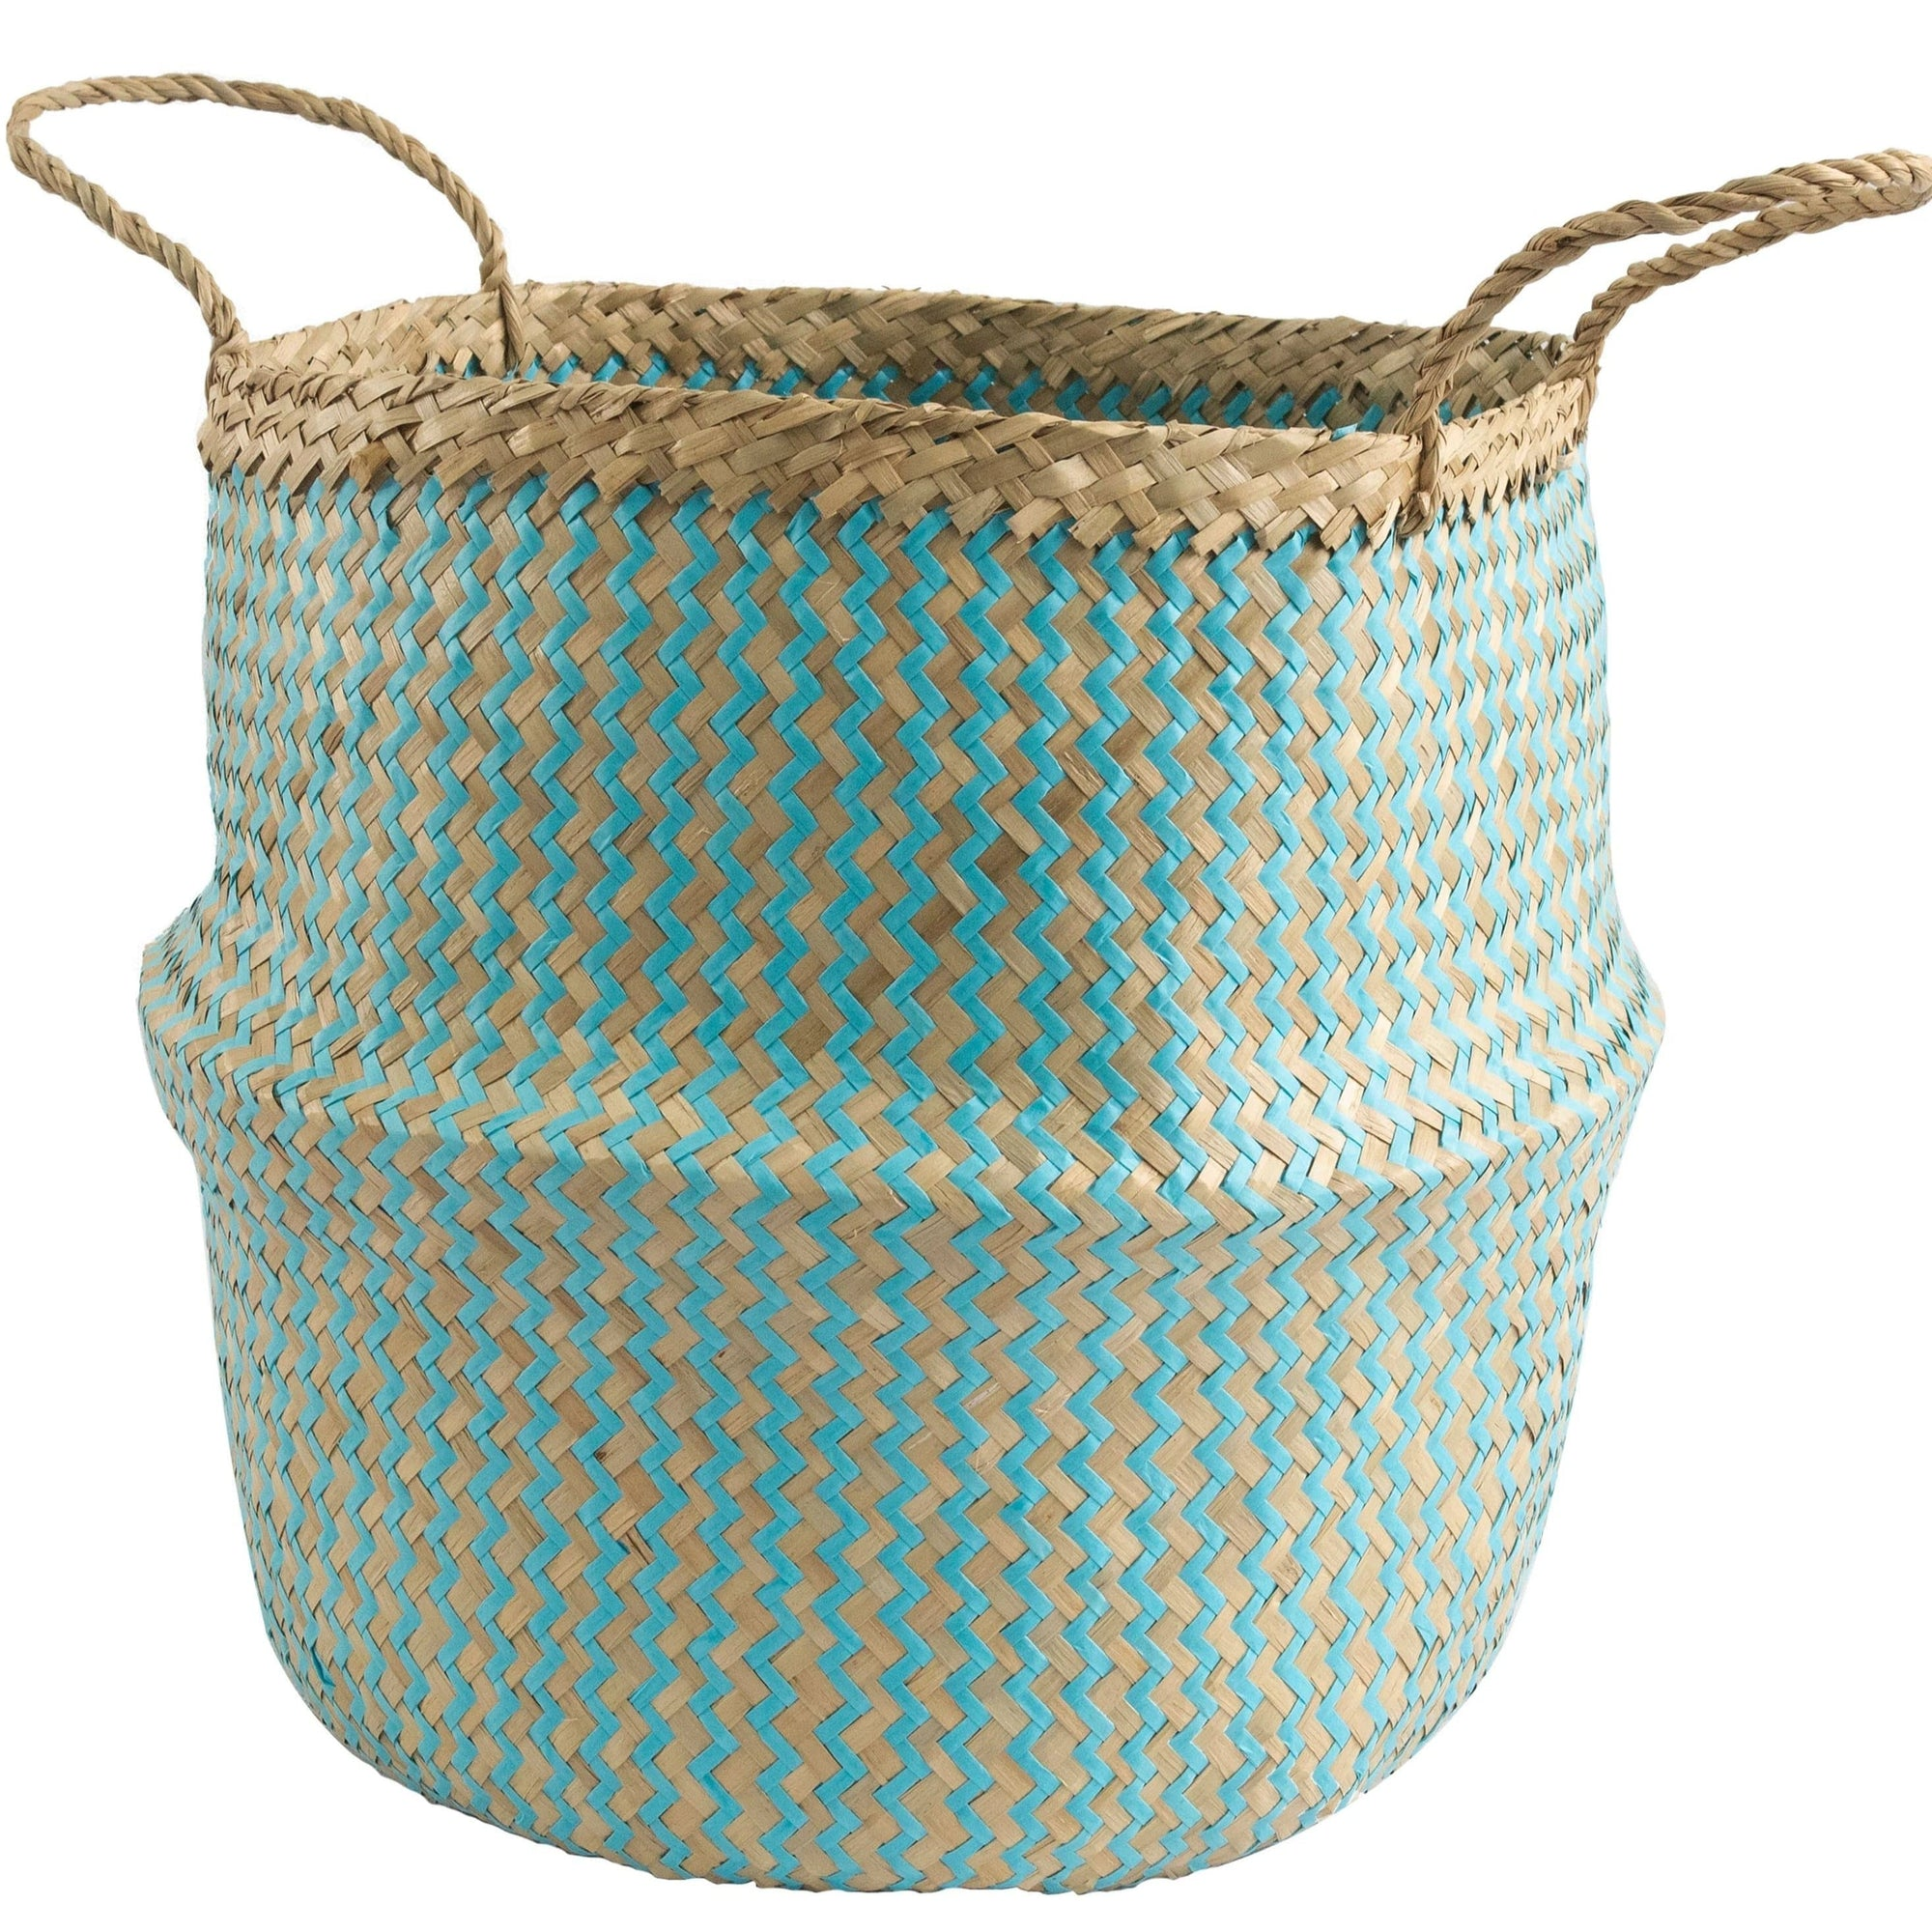 Made Terra Belly Baskets Cyan Zigzag Belly Basket with Handles | Woven Baskets for Laundry Storage & Home supplies (Large)